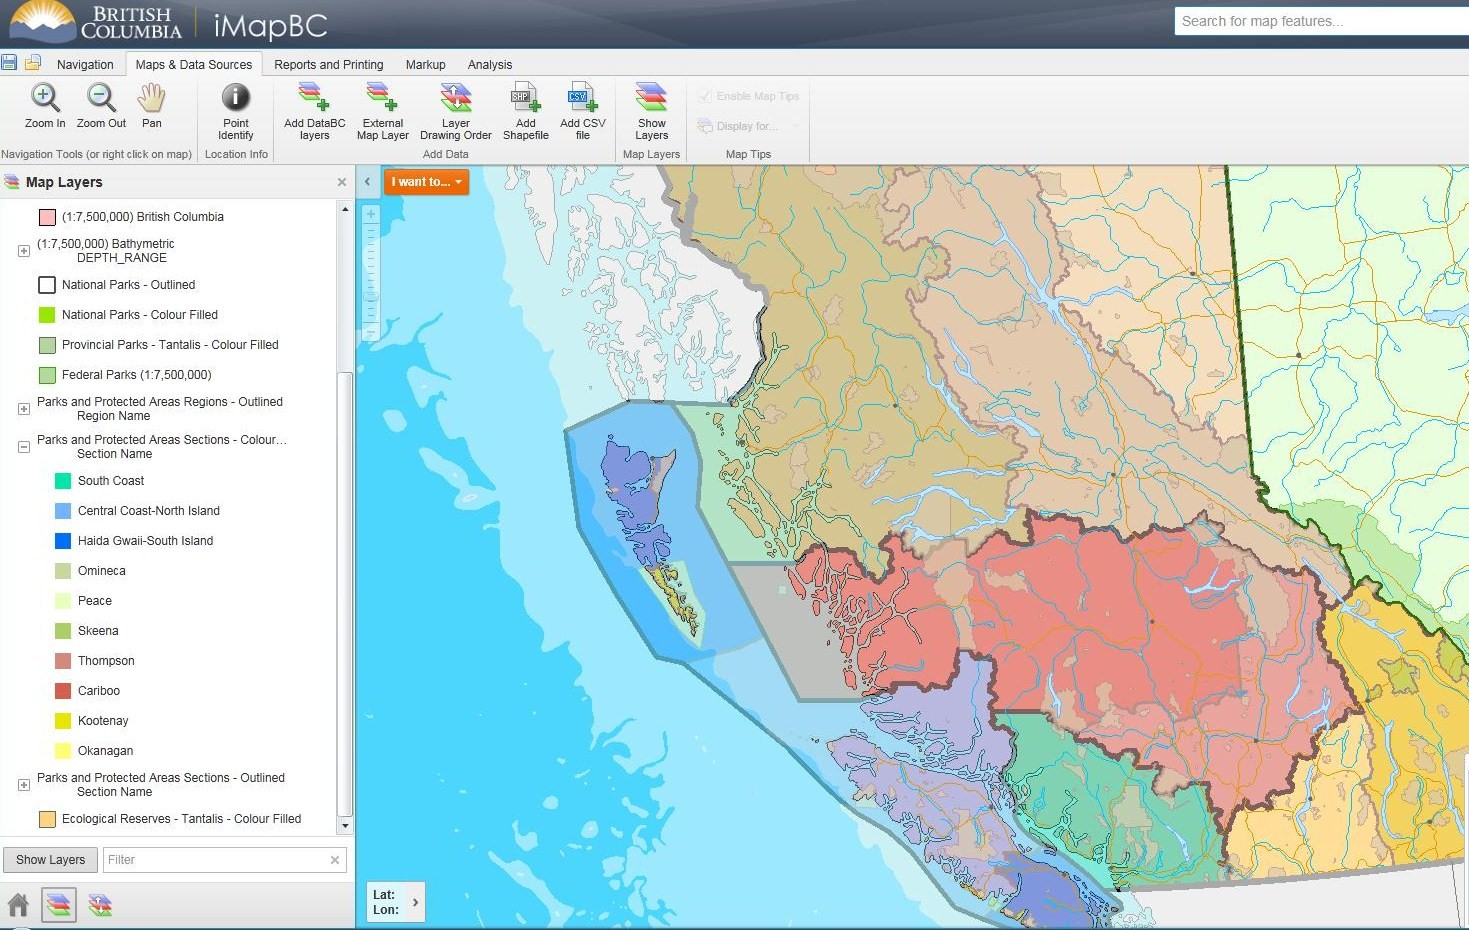 Free data software archives page 3 of 4 canadian gis geomatics this popular public mapping tool can be freely used to visualize and analyze hundreds of geographic government datasets content includes location of gumiabroncs Images